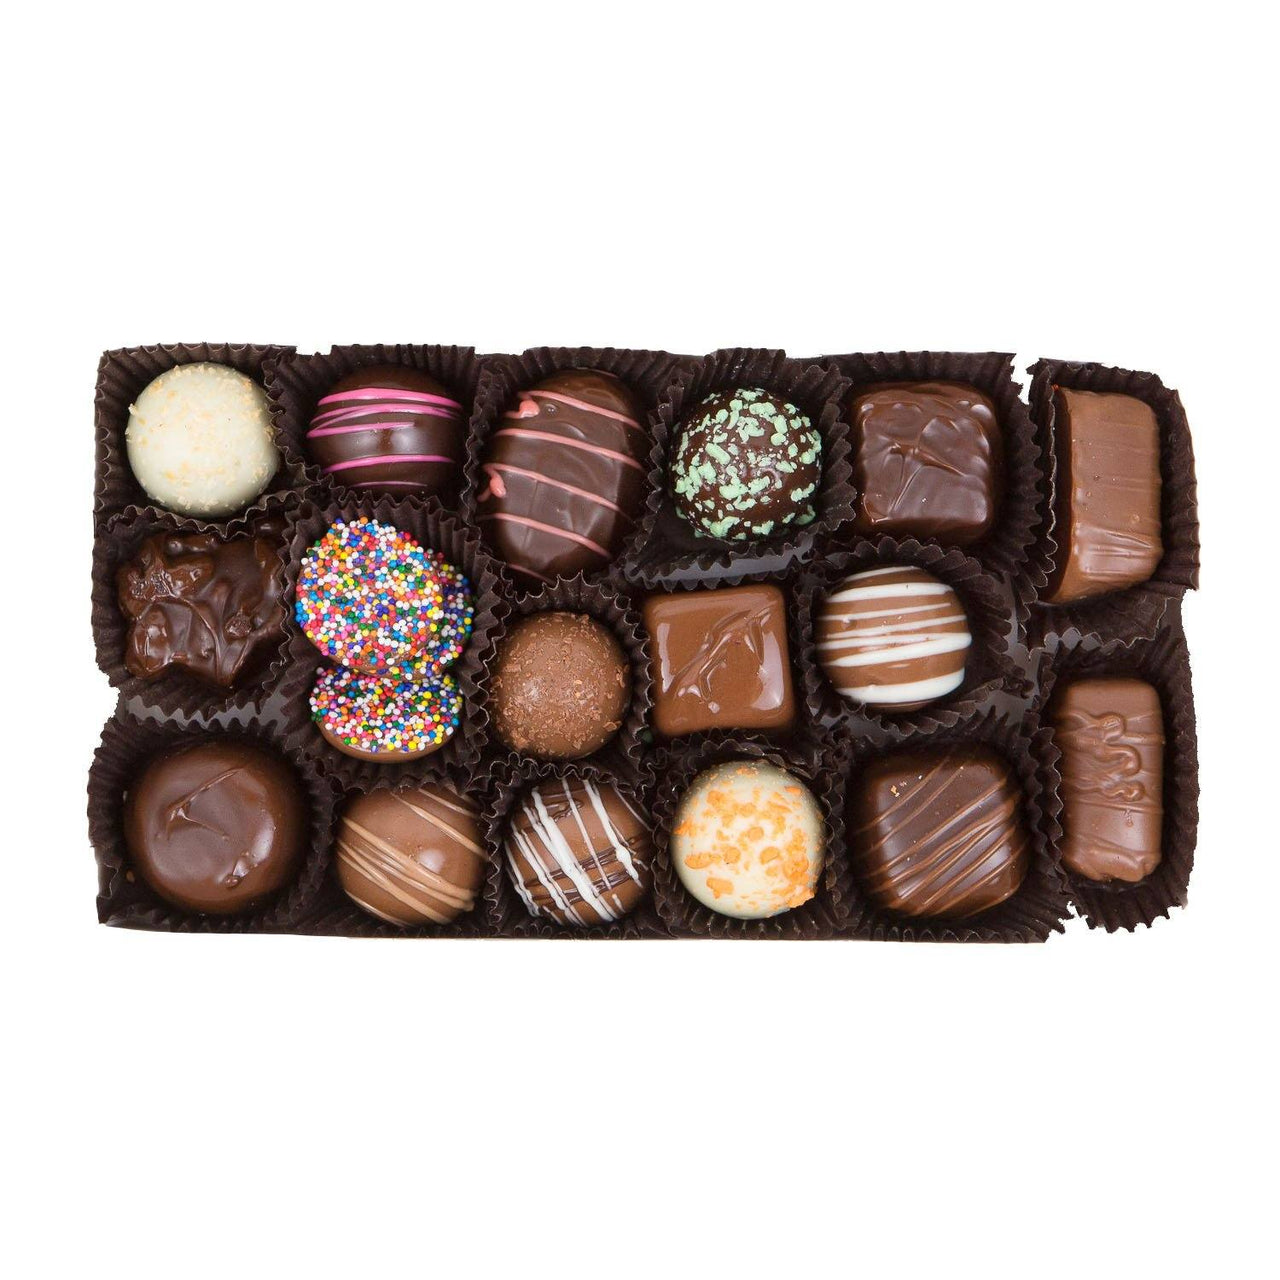 Gifts for Grandparents - Assorted Chocolate Gift Box - Jackie's Chocolate (1487128821795)